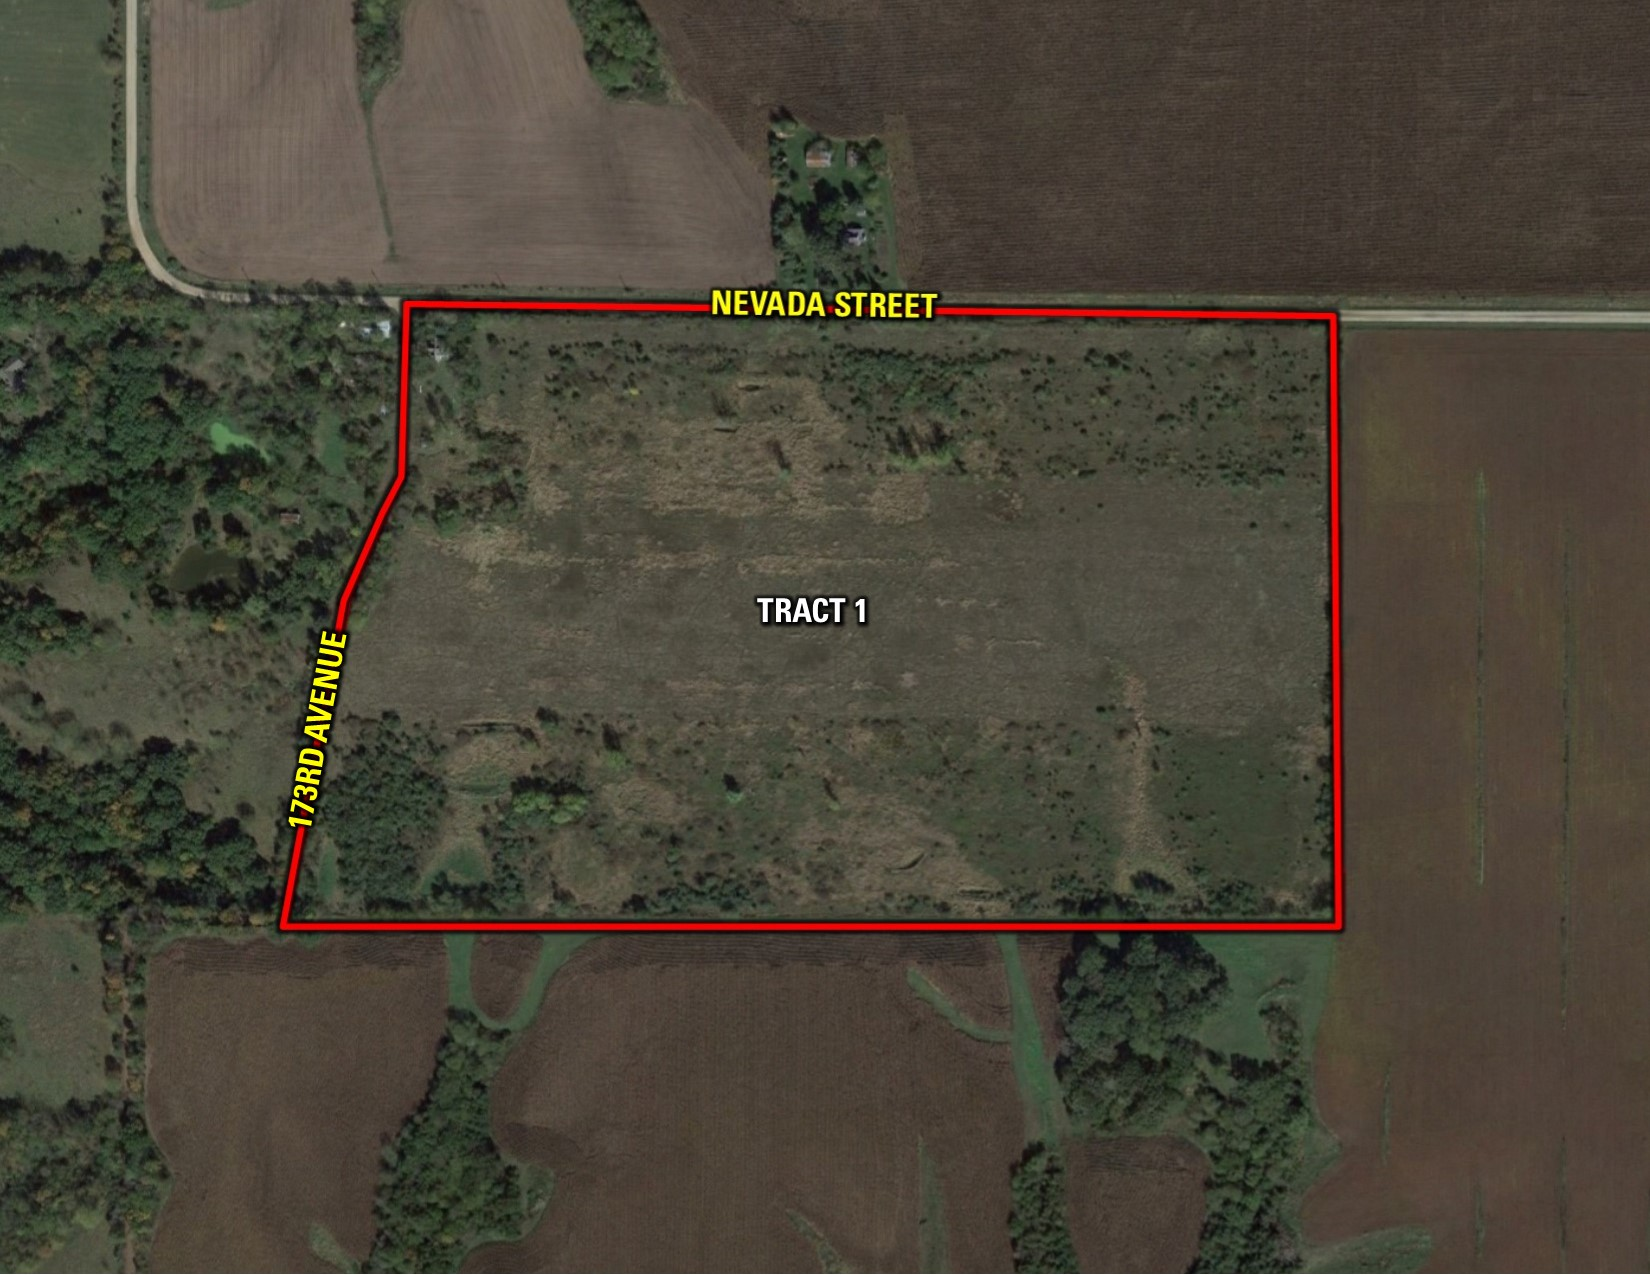 Warren County Auction - Tract 1 - Google 1